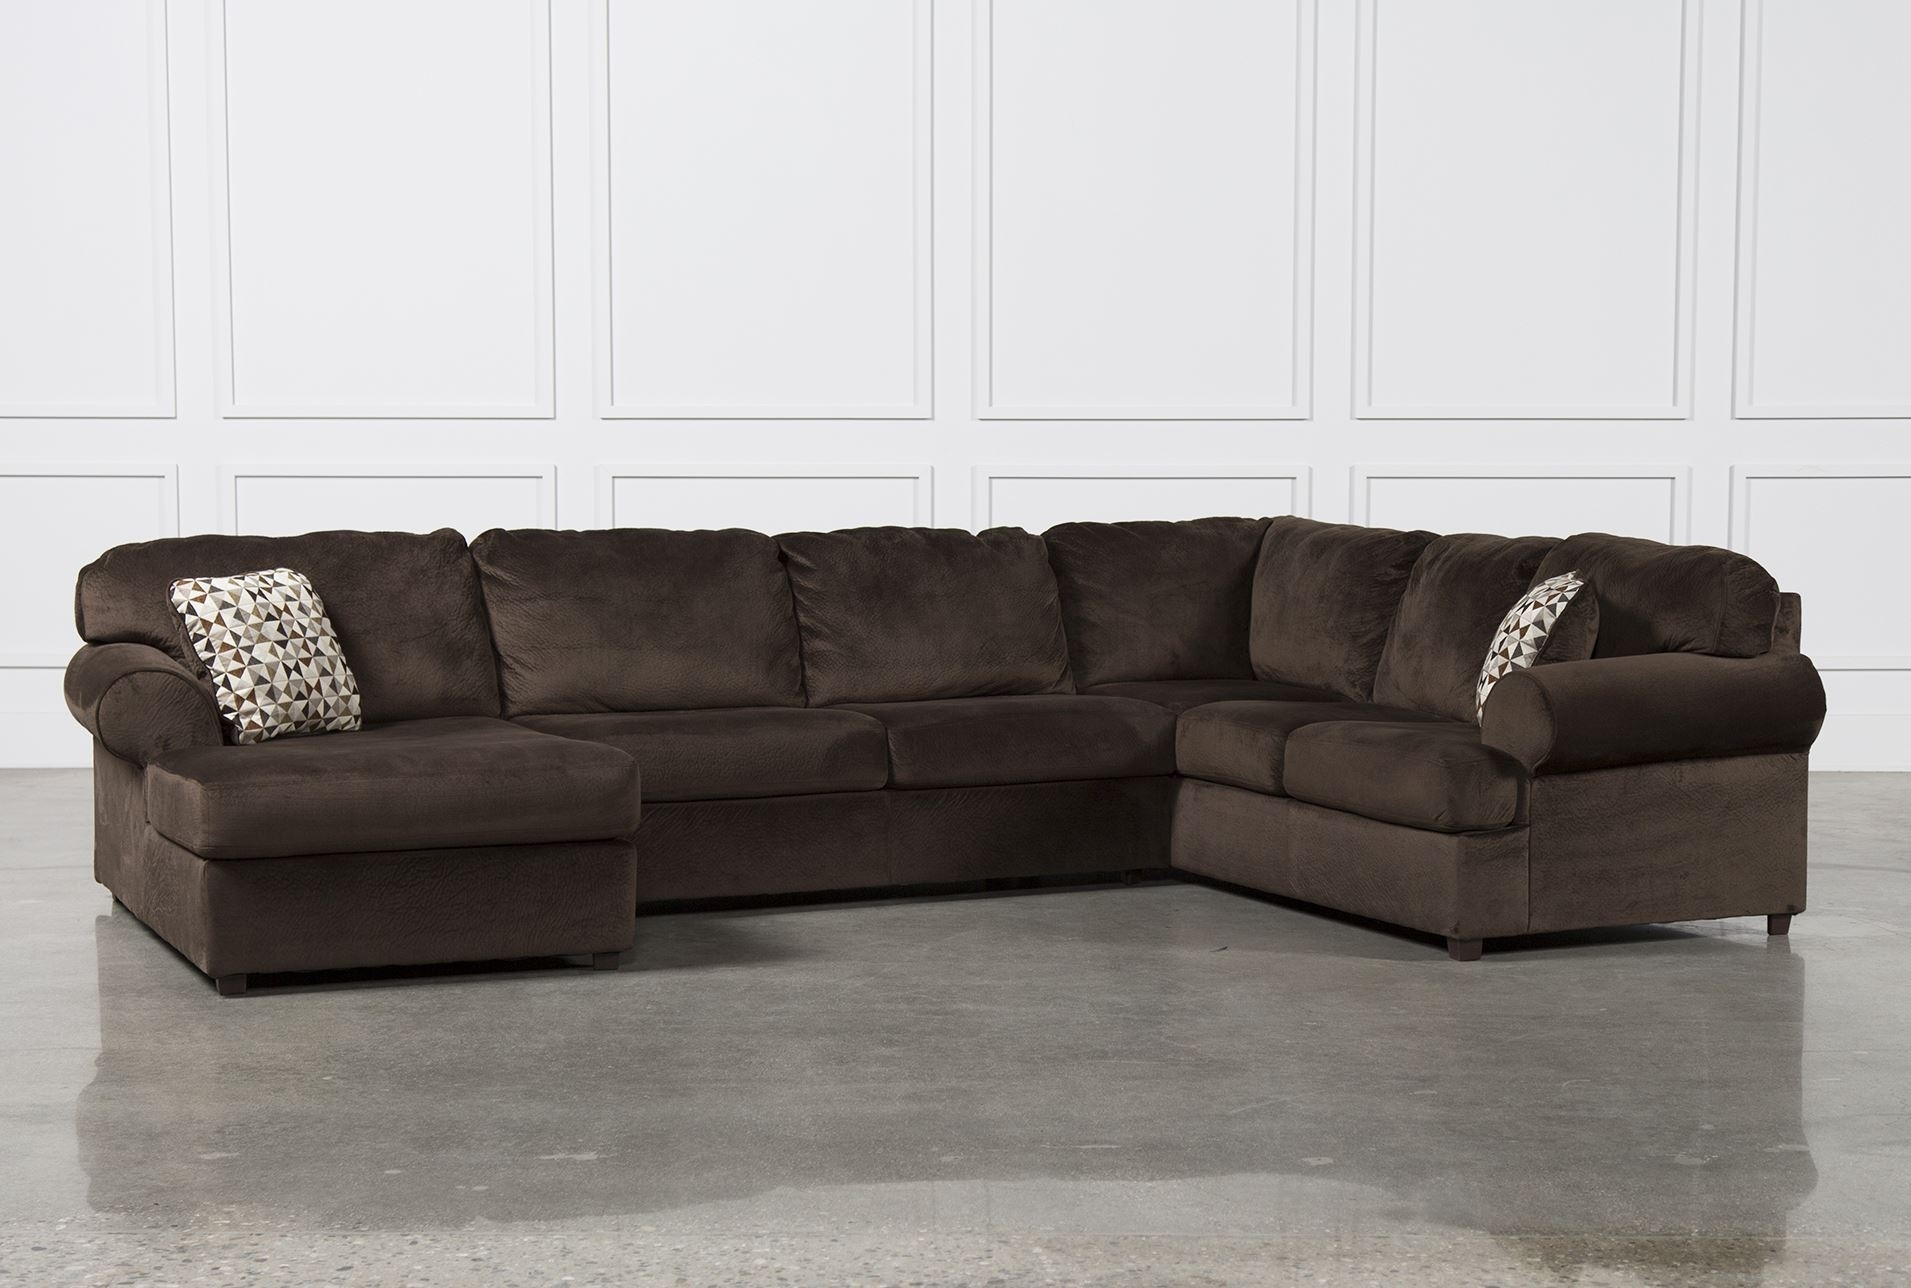 3 Piece Leather Sectional Sofa With Chaise – Cleanupflorida Regarding Gordon 3 Piece Sectionals With Raf Chaise (Photo 9 of 25)